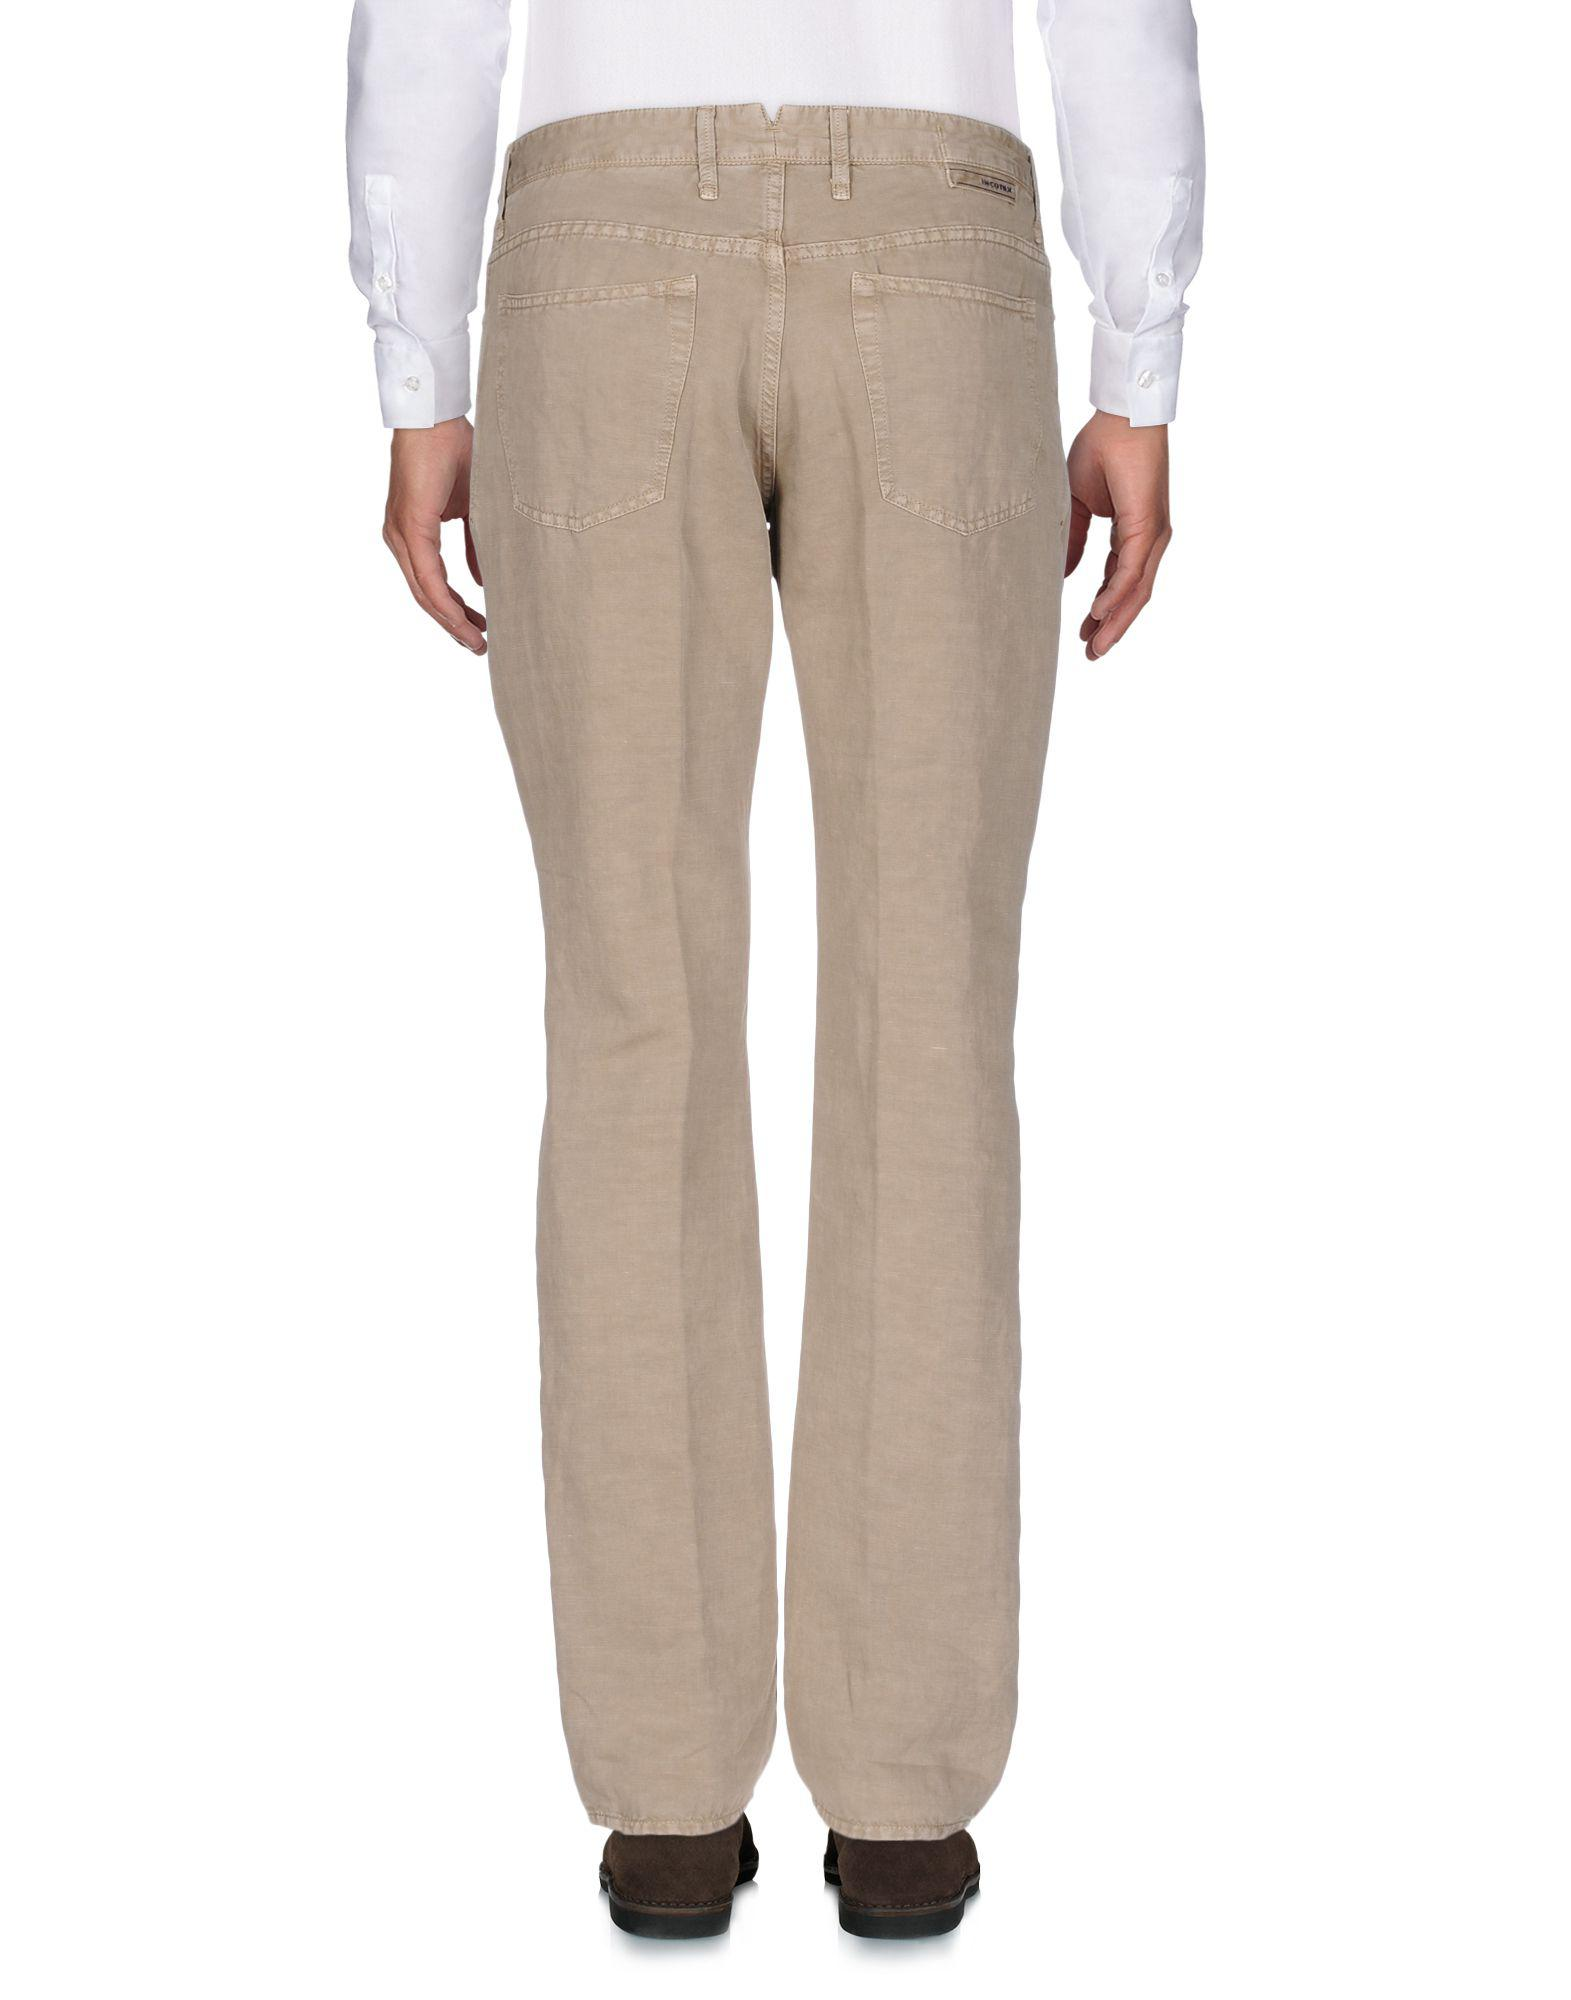 Incotex Leather Casual Pants in Khaki (Natural) for Men